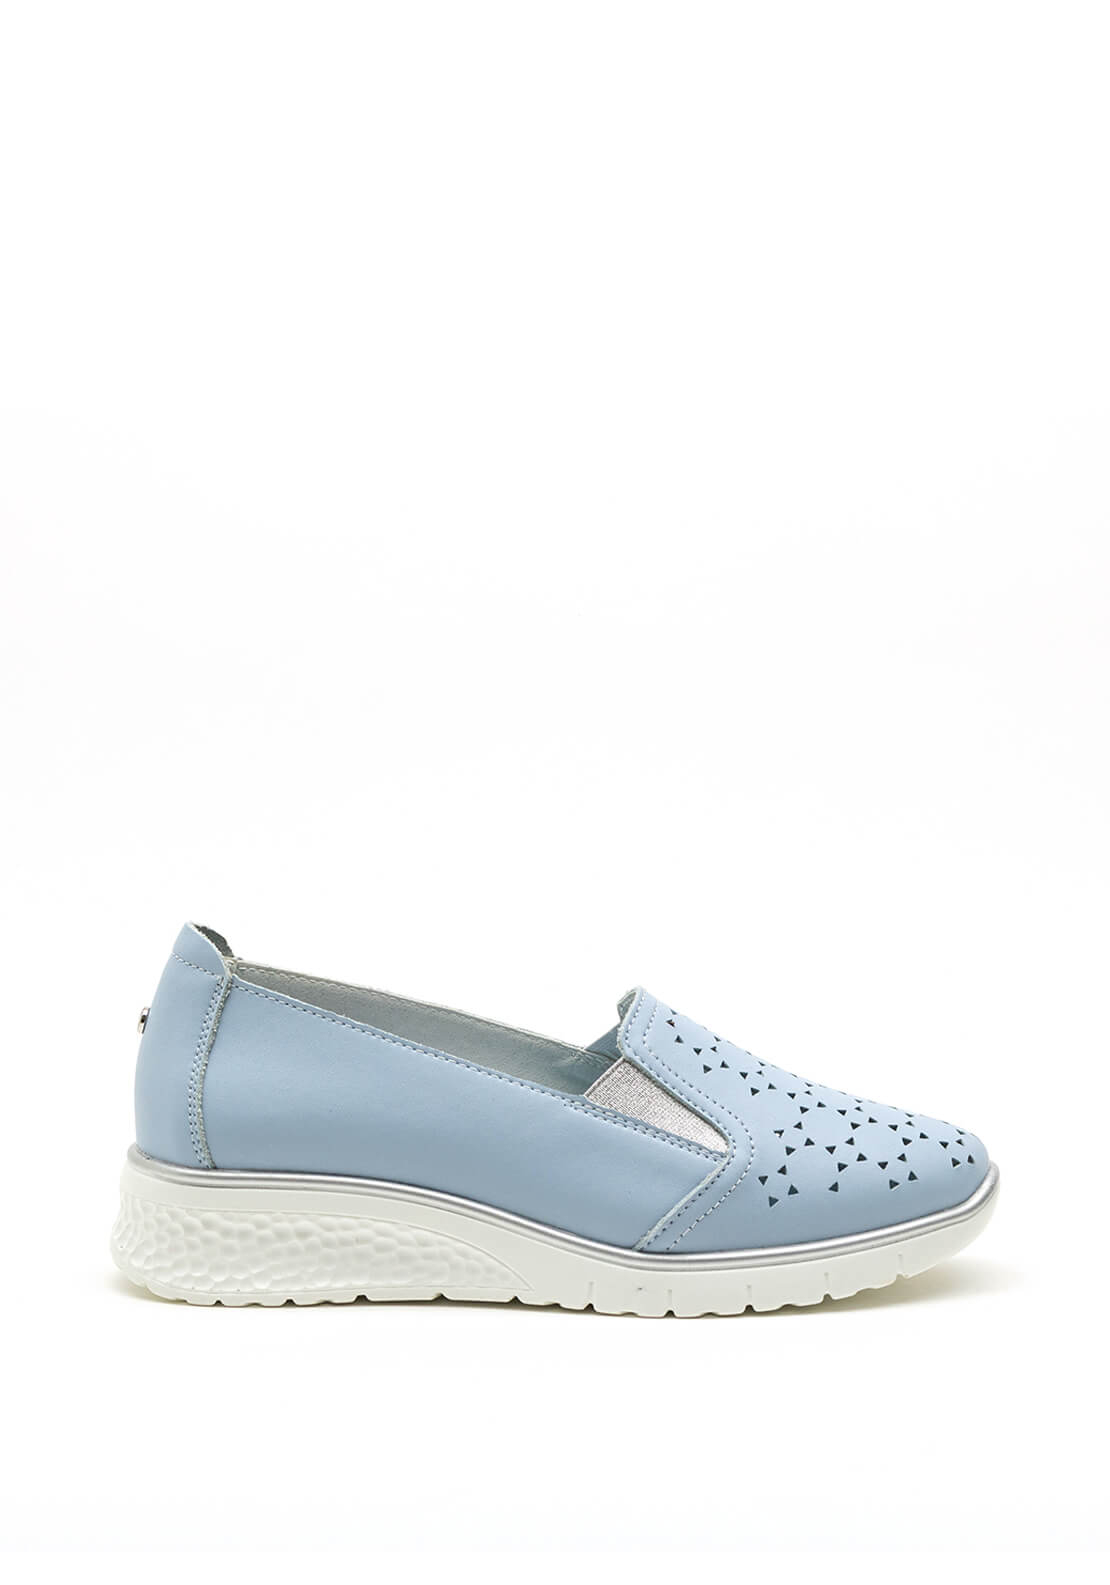 Zanni & Co. Perforated Detail Wedge Shoe, Blue